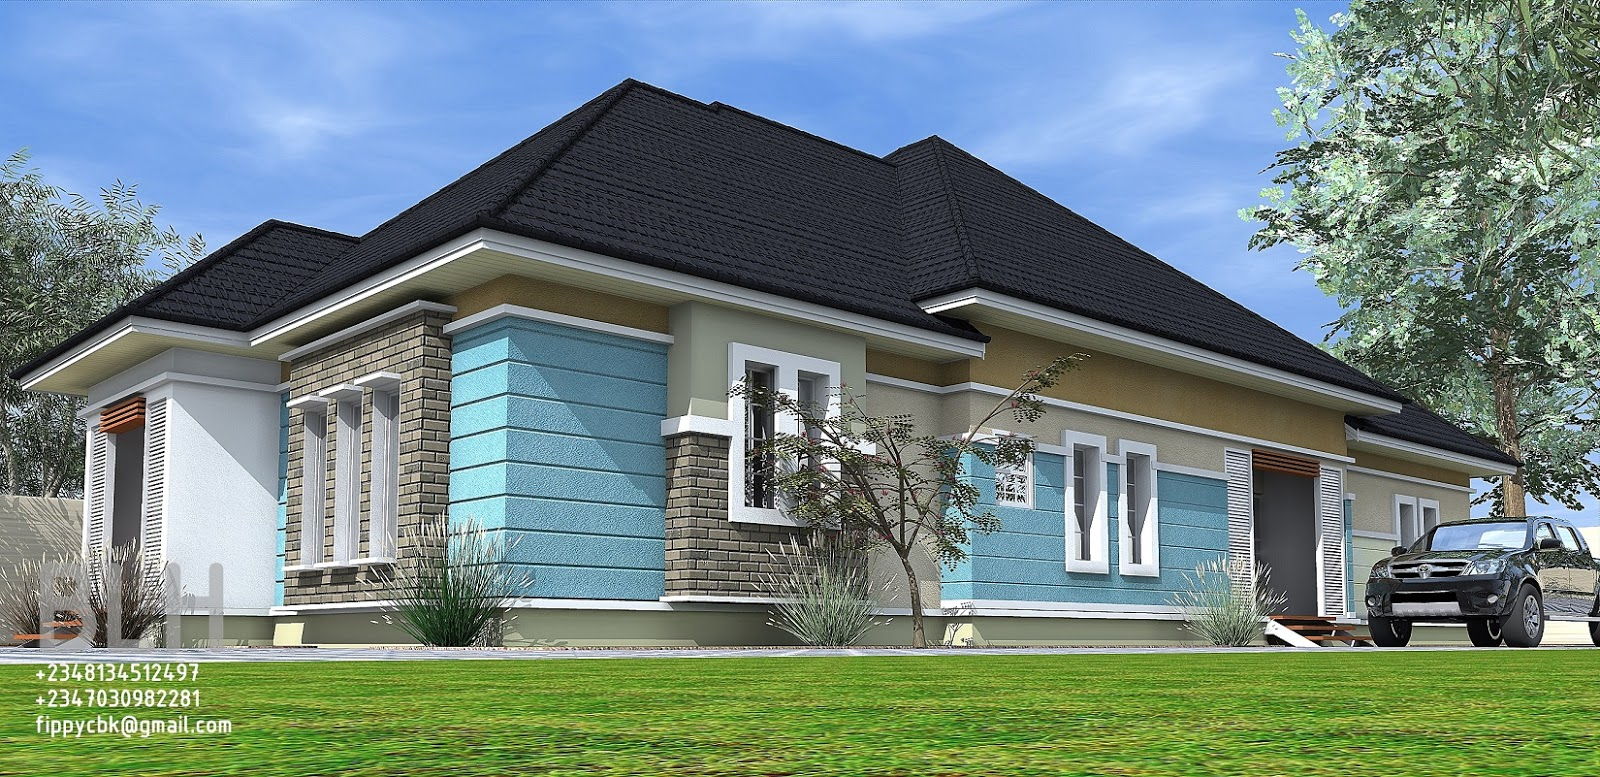 Architectural designs by blacklakehouse 4 bedroom bungalow for Cottage architectural plans